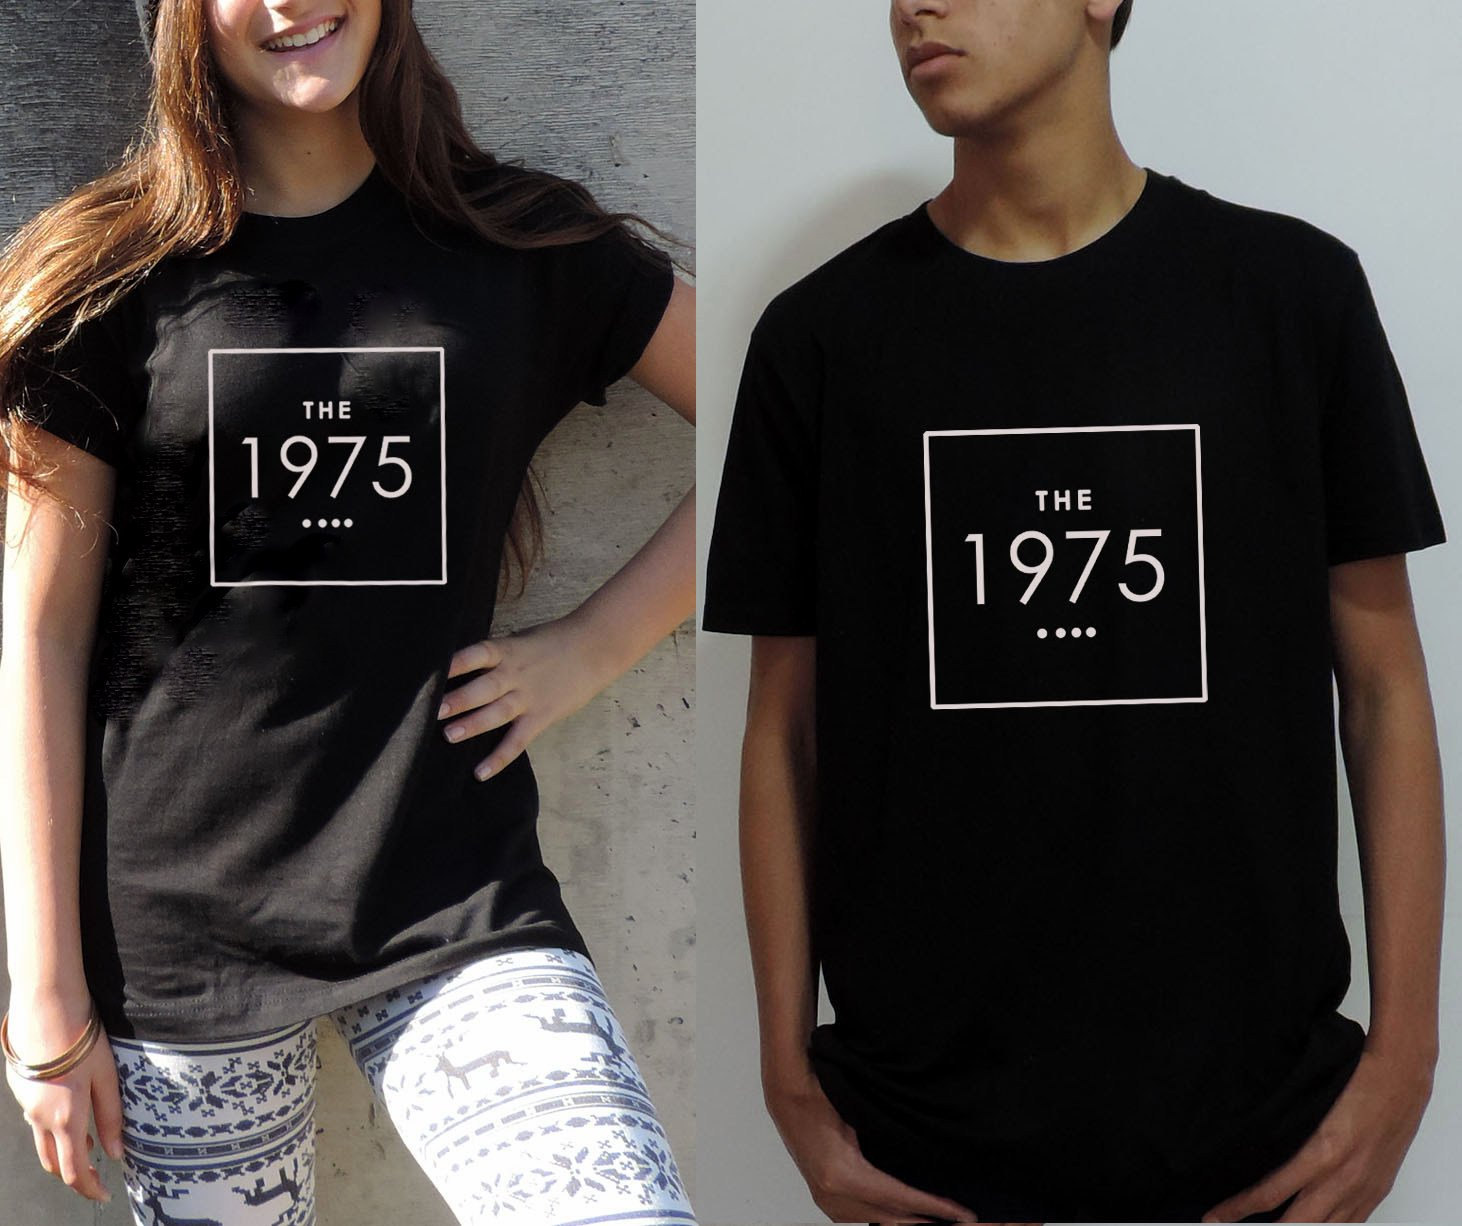 Black t shirt unisex - The 1975 Shirt In Black White And Gray T Shirt Unisex Indie Rock Hipster Clothes The 1975